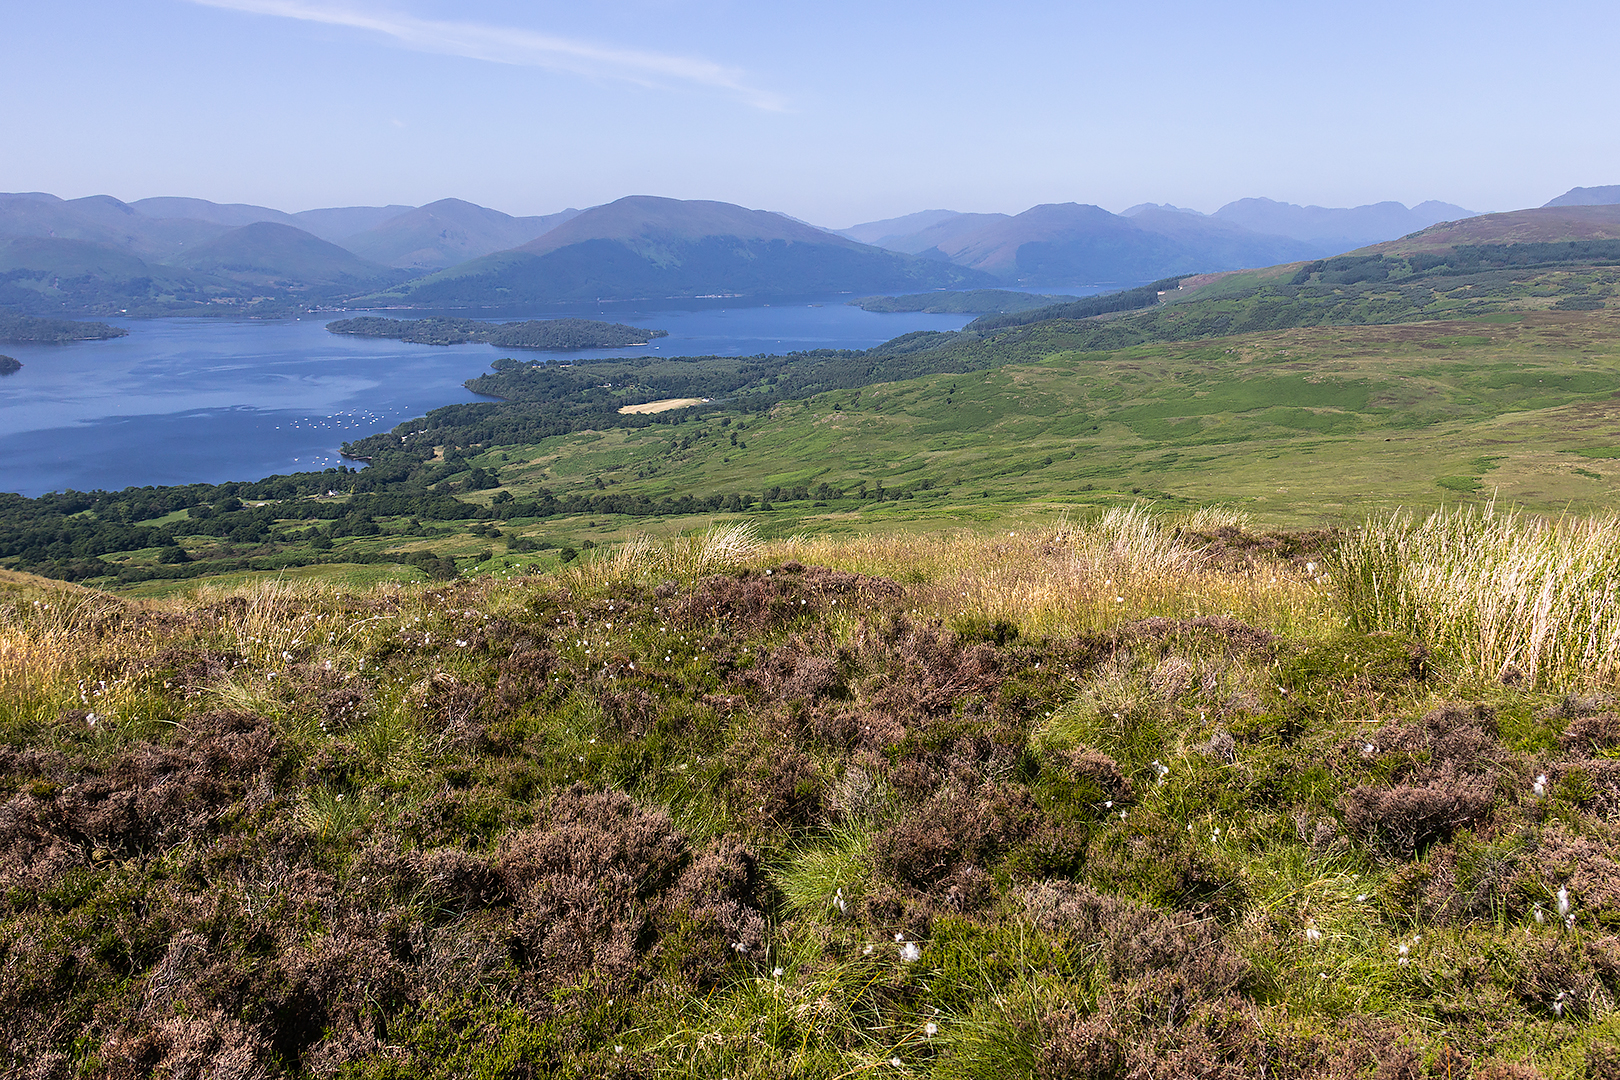 Loch Lomond and the Highlands from Conic Hill